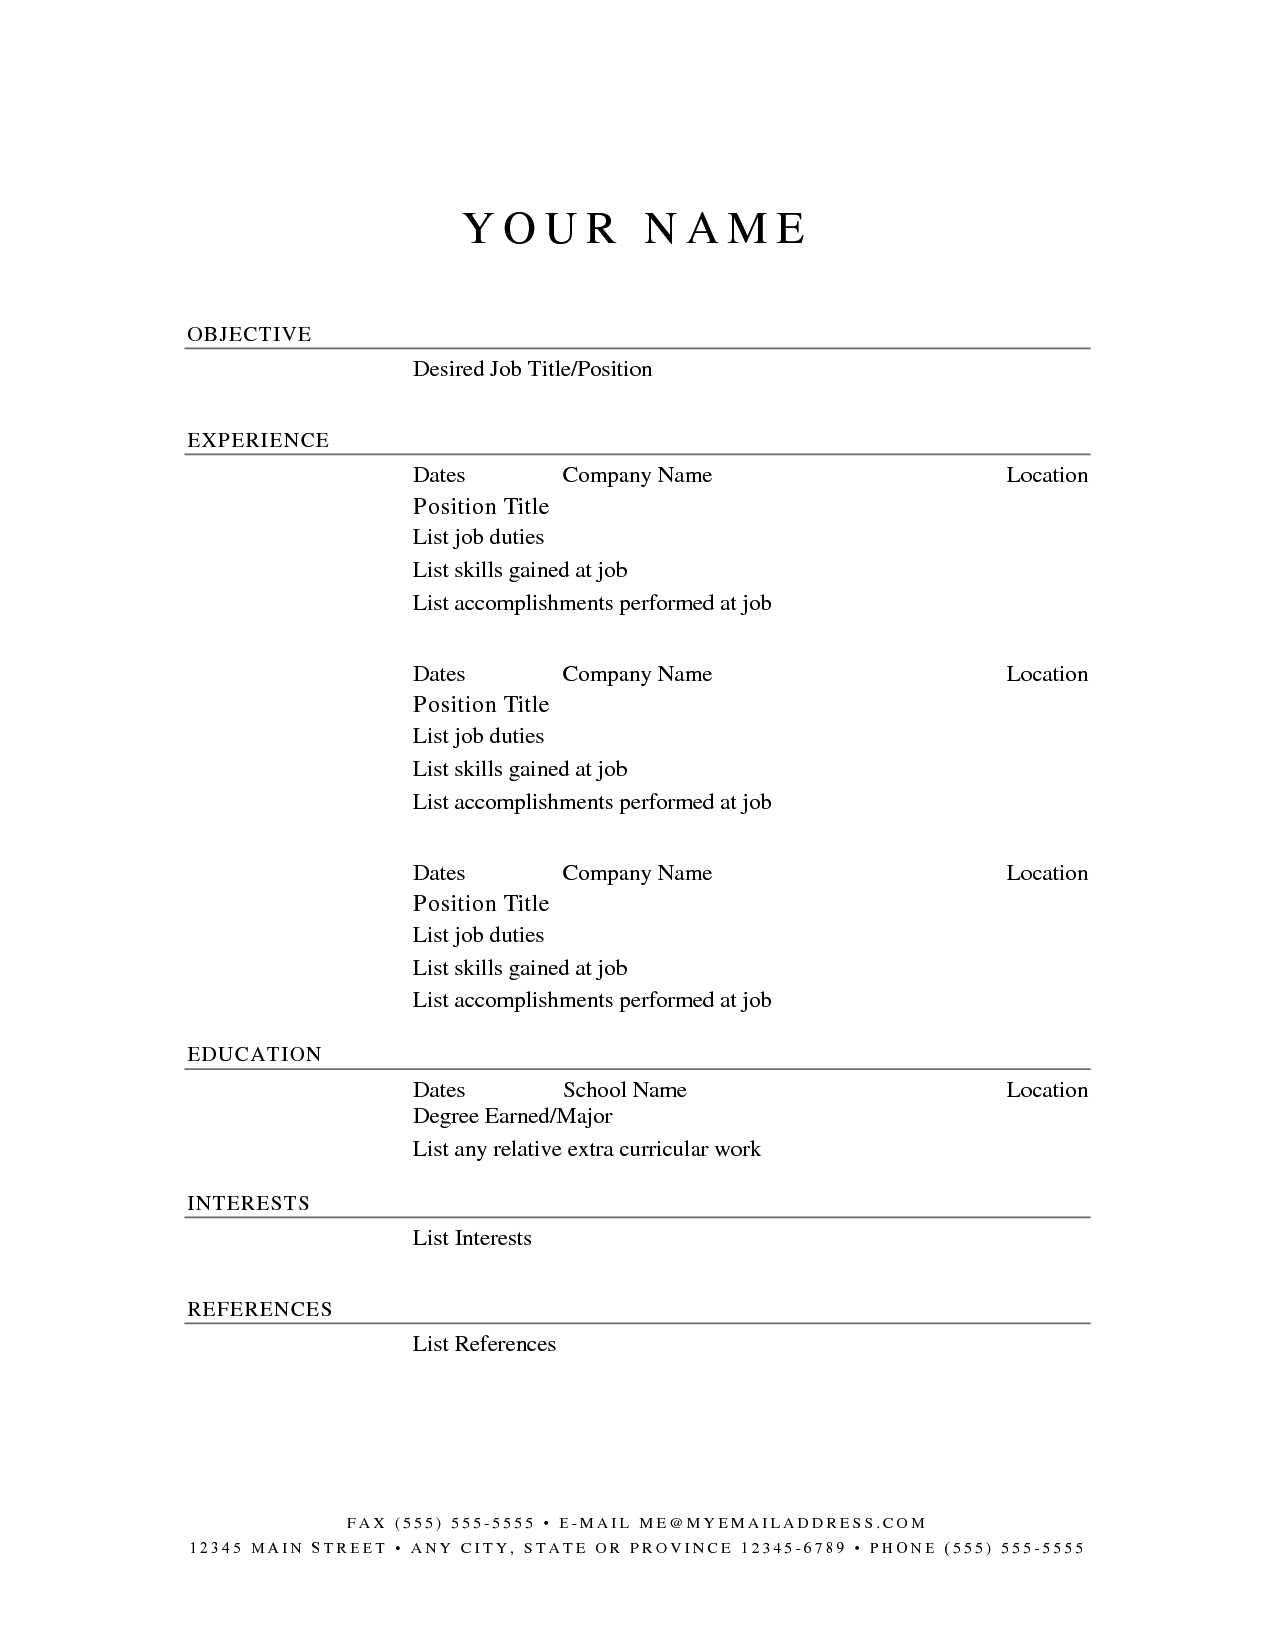 basic resume outline templates httpwwwjobresumewebsitebasic - Job Resume Templates